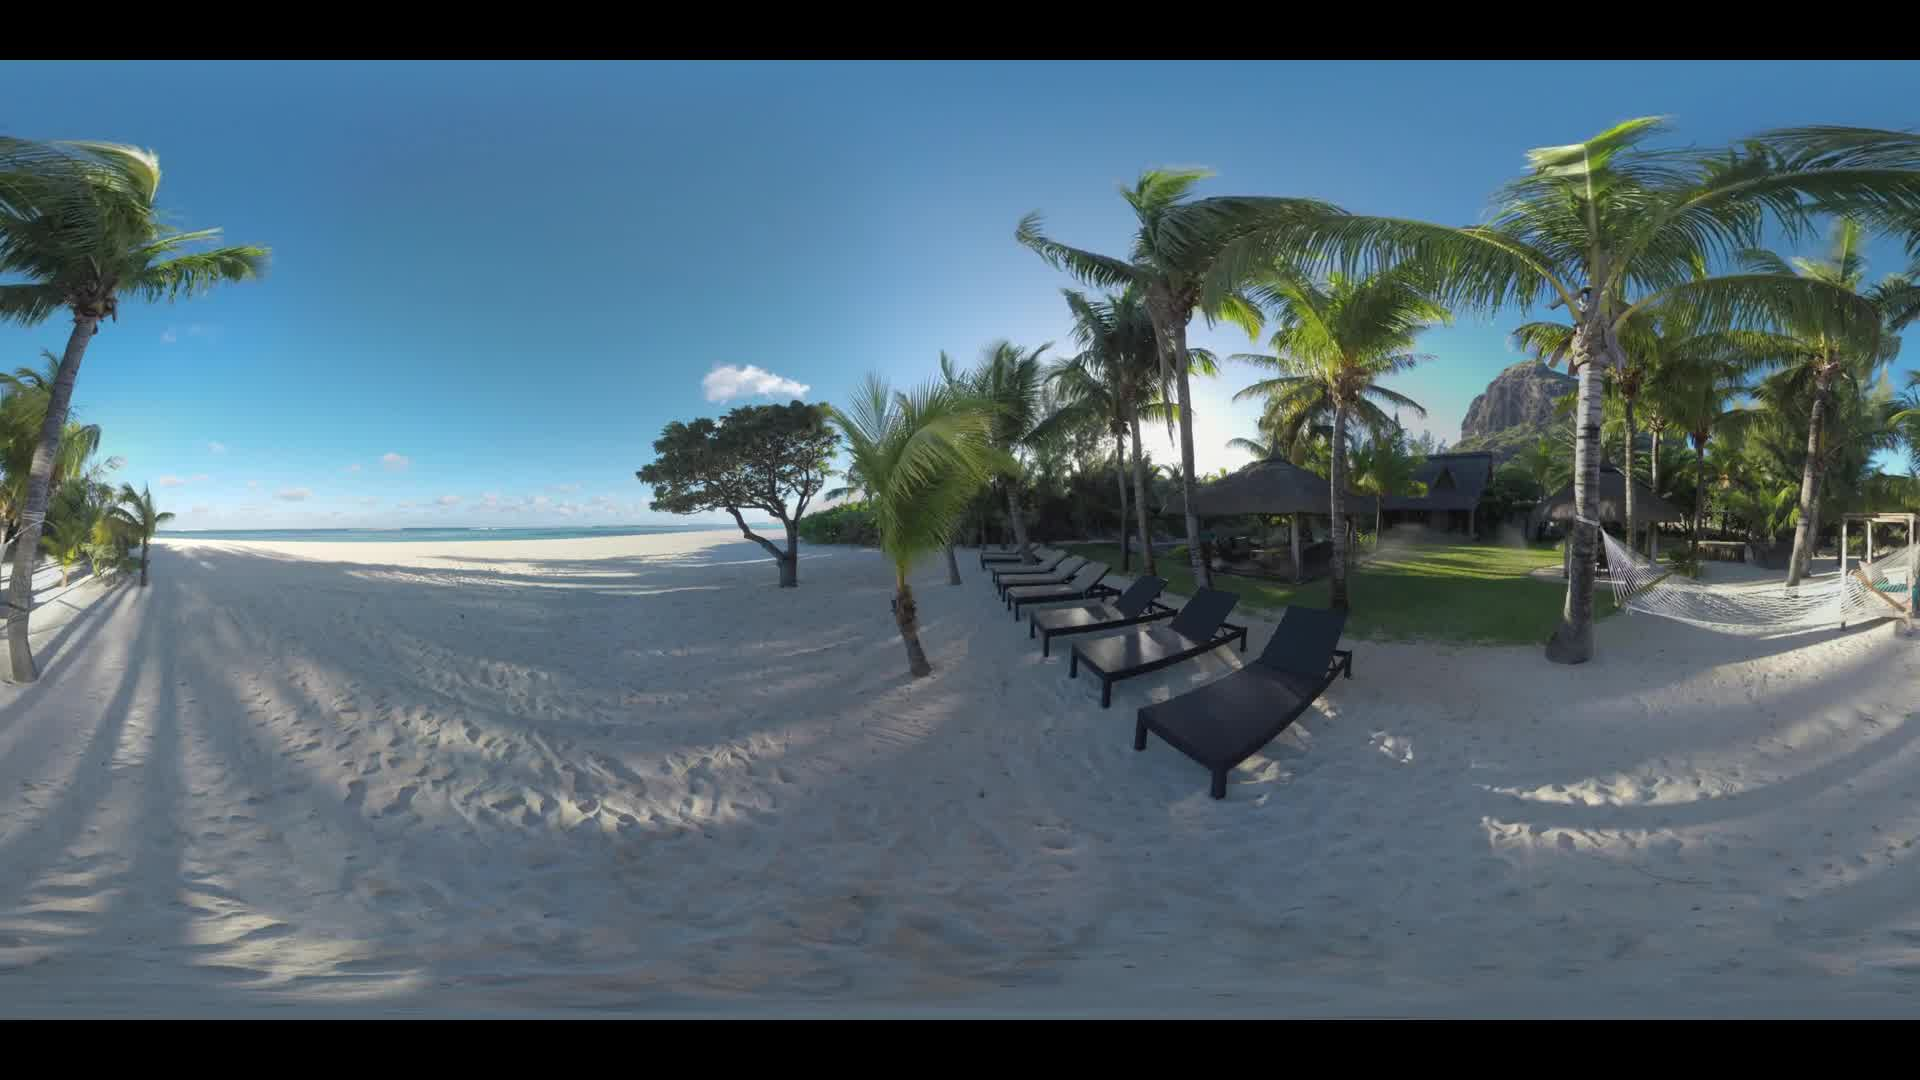 MAURITIUS ISLAND - JUNE 08, 2016: 360 VR video. Ocean skyline and beach with hammock, chaise-longues on tropical resort of Le Morne Brabant, Mauritius. Couple with dog walking along the coast